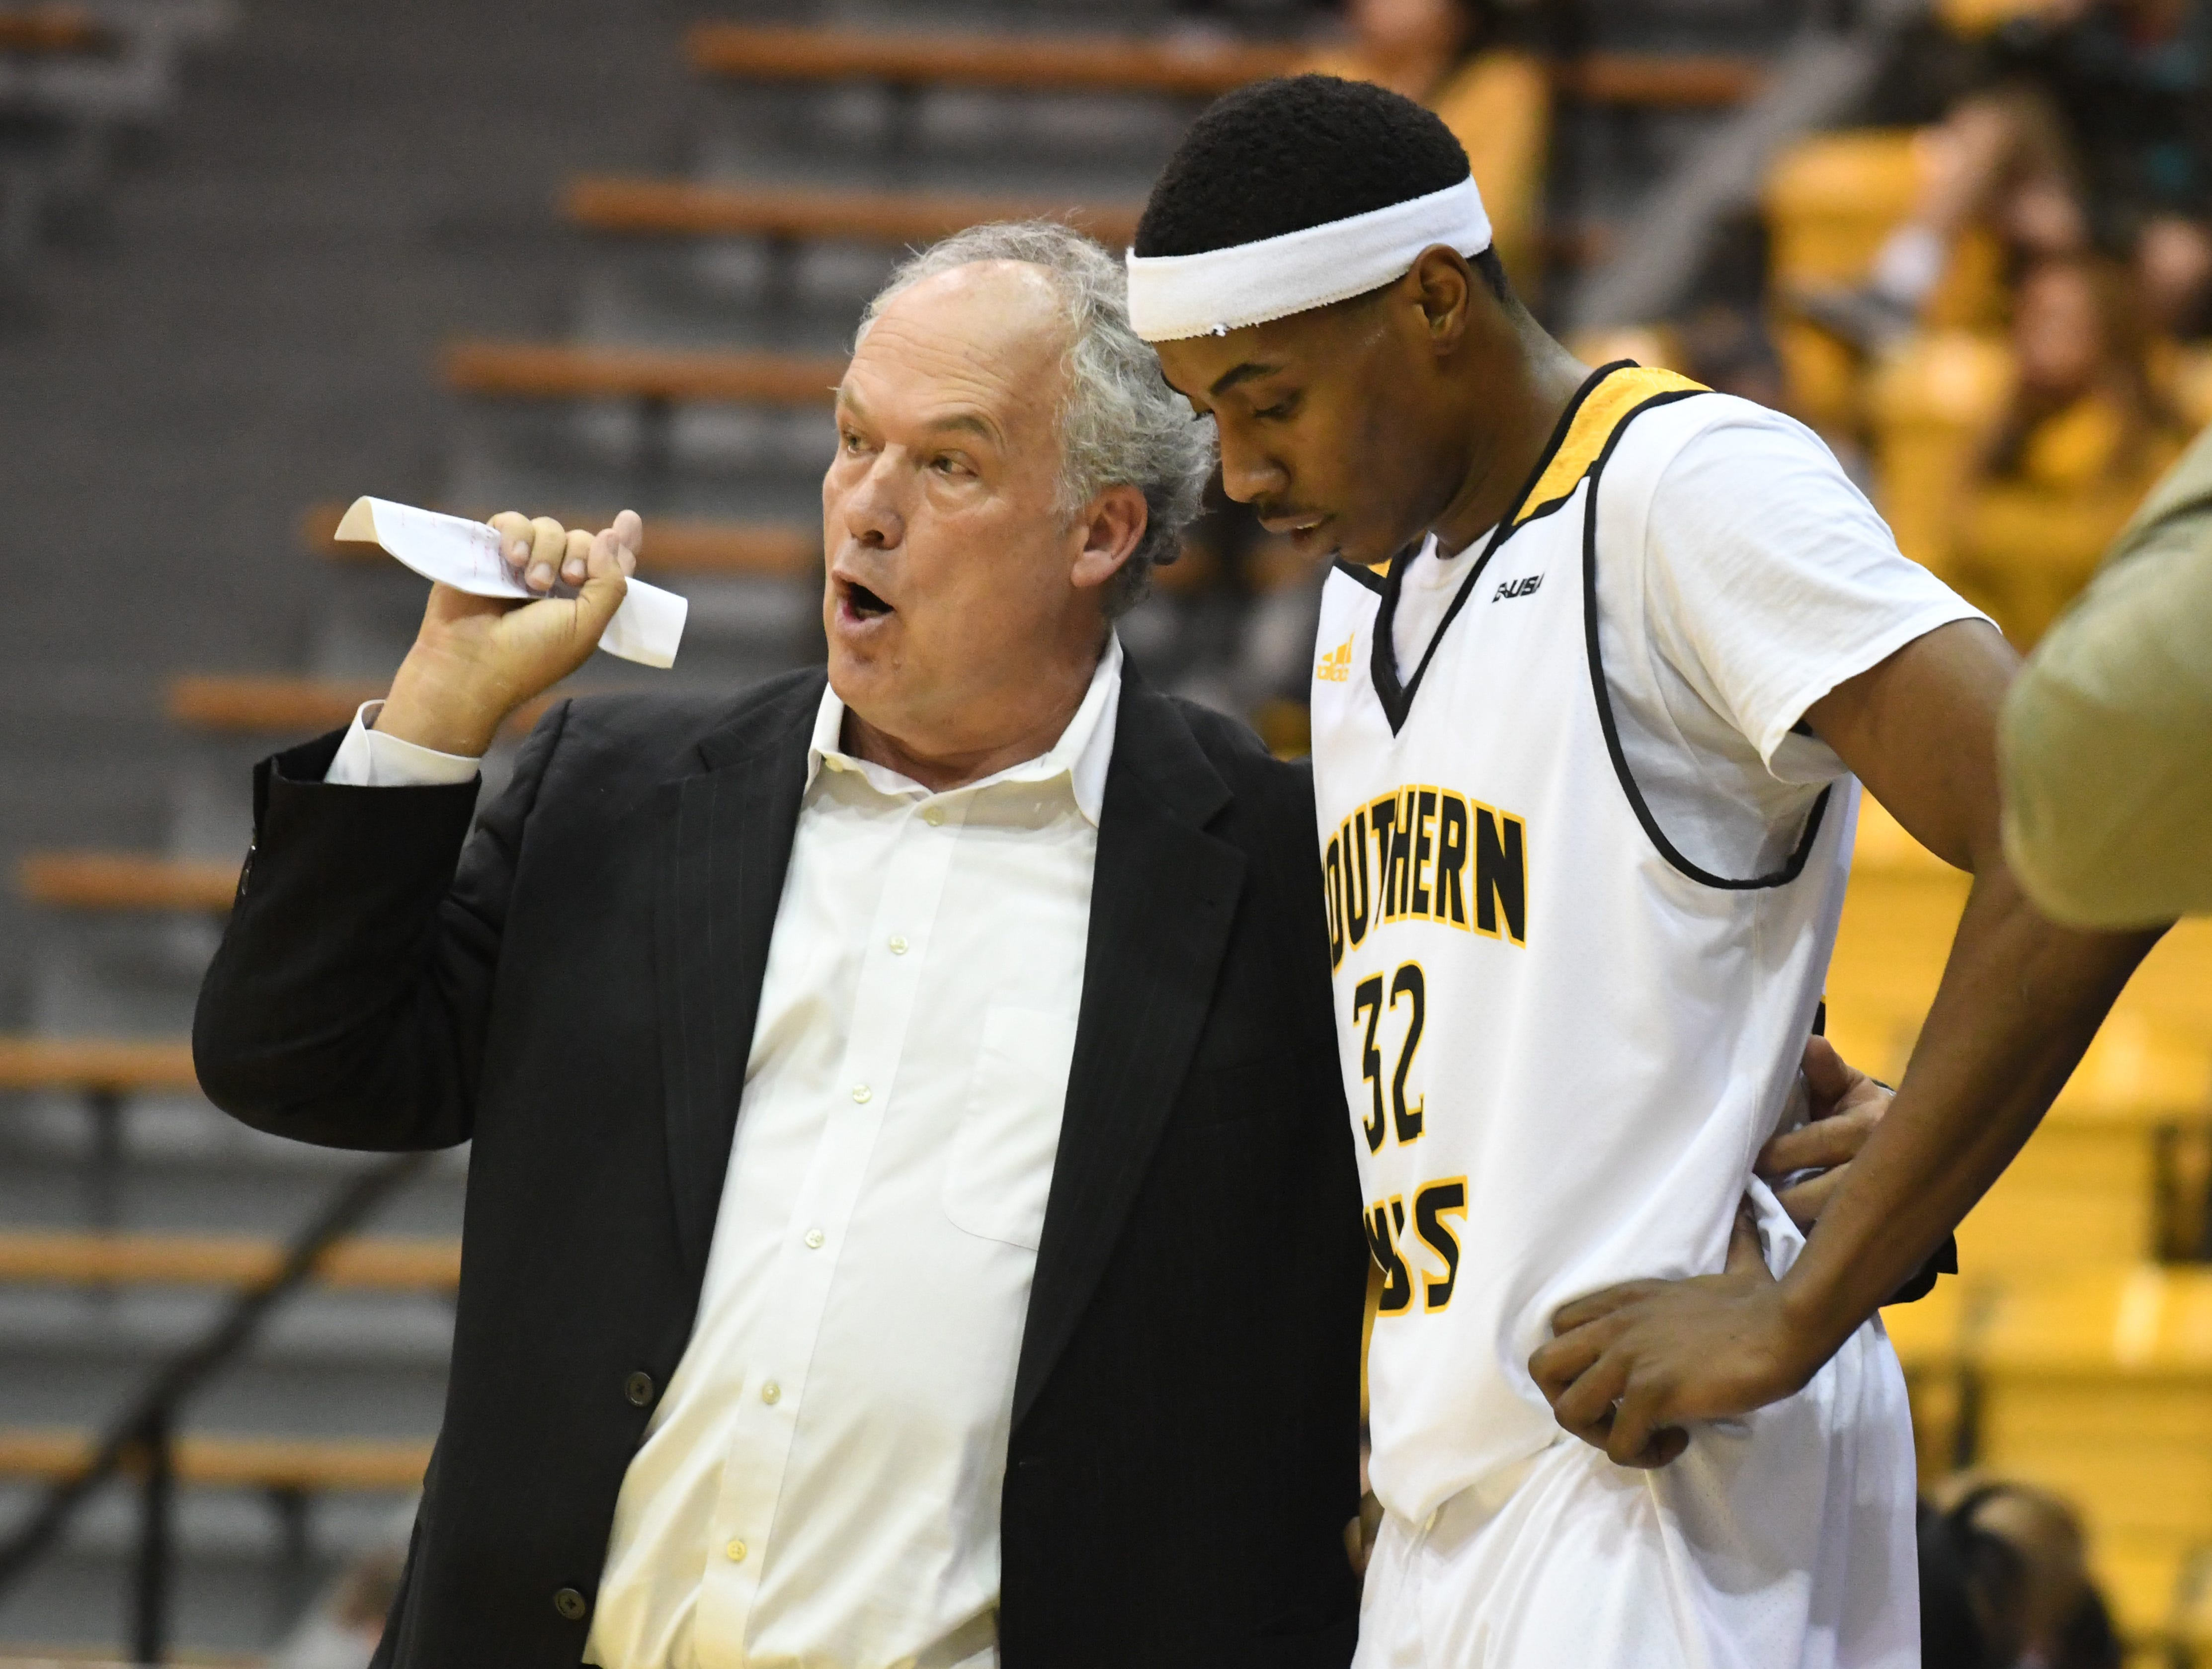 Southern Miss head coach Doc Sadler speaks with forward Leonard Harper-Baker shoots for the basket in a game against South Alabama in Reed Green Coliseum on Wednesday, November 28, 2018.